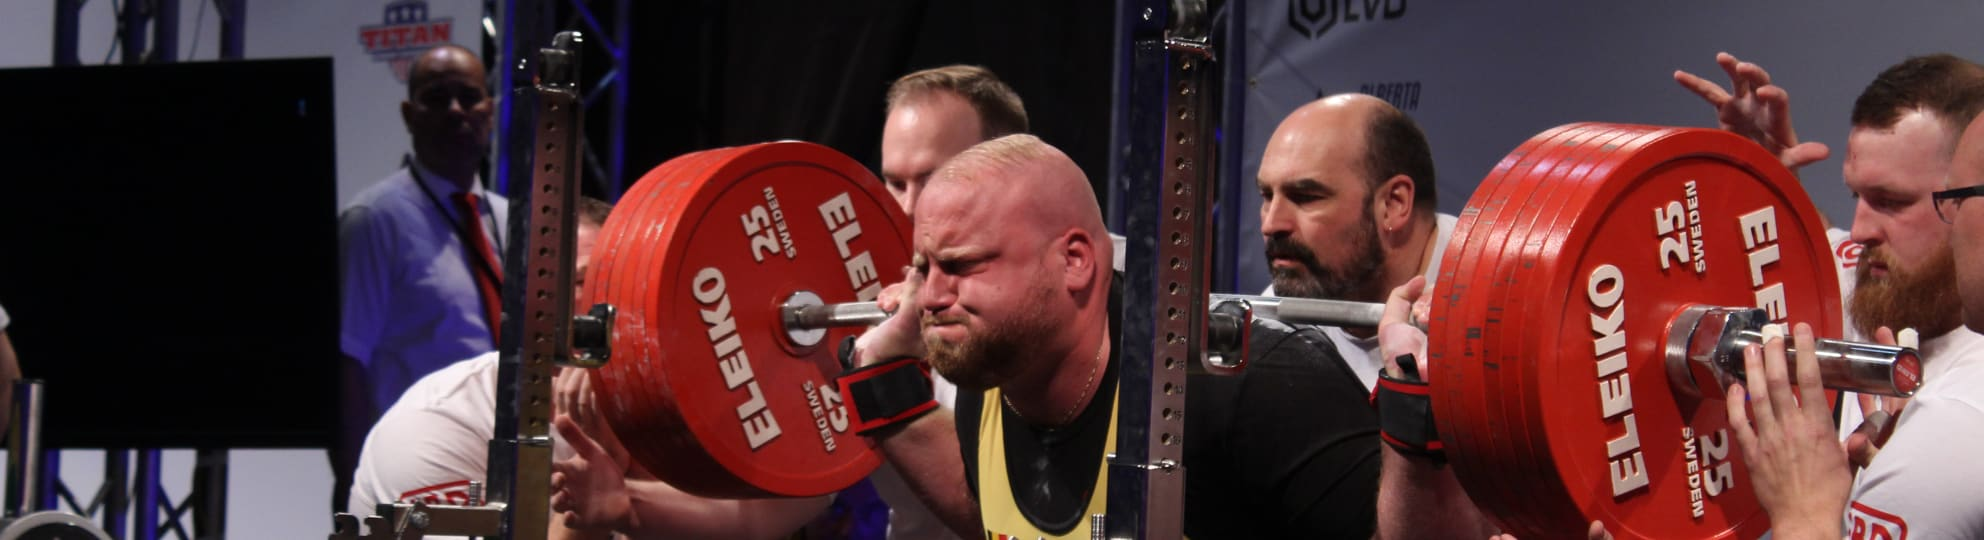 Your complete guide to the 2019 World Powerlifting